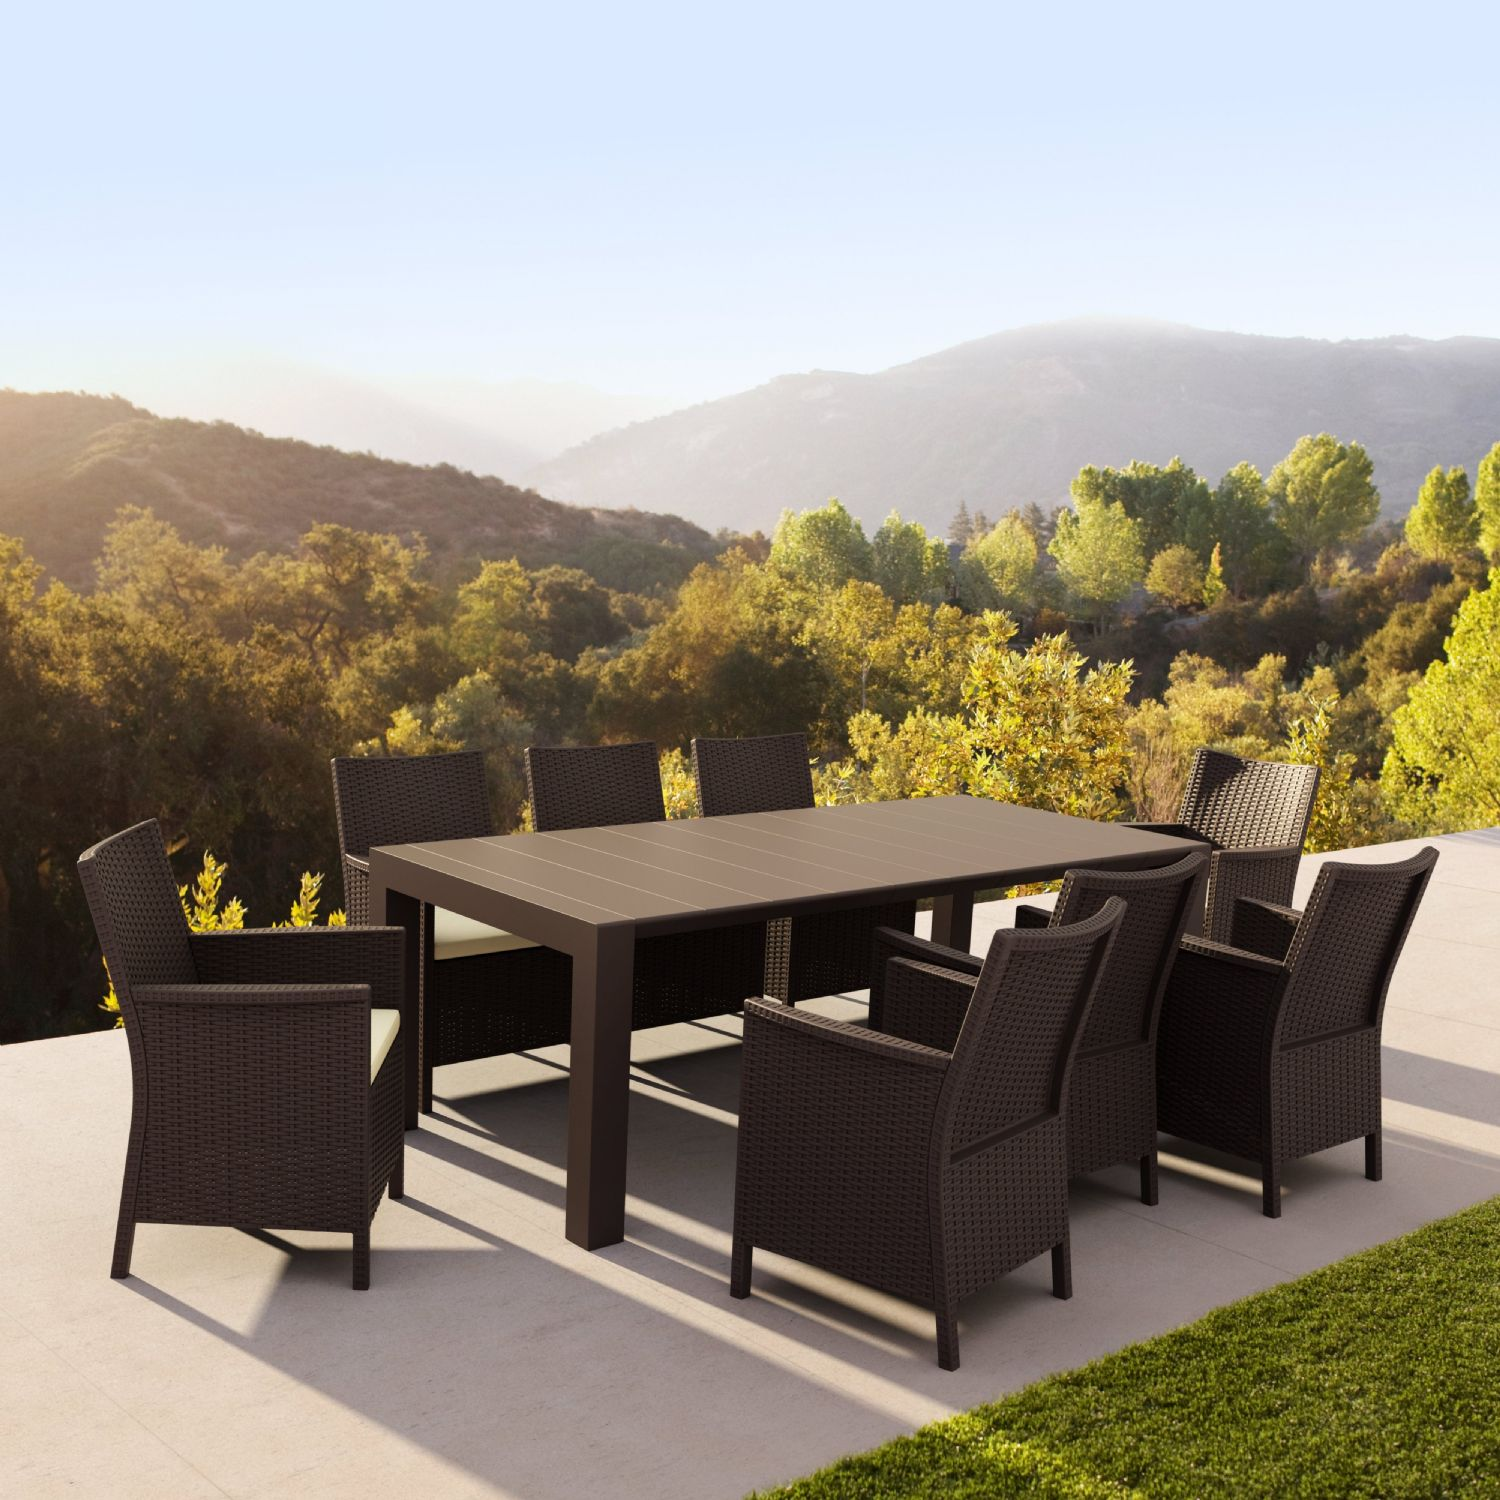 Vegas Outdoor Dining Table Extendable from 70 to 86 inch White ISP774-WH - 4